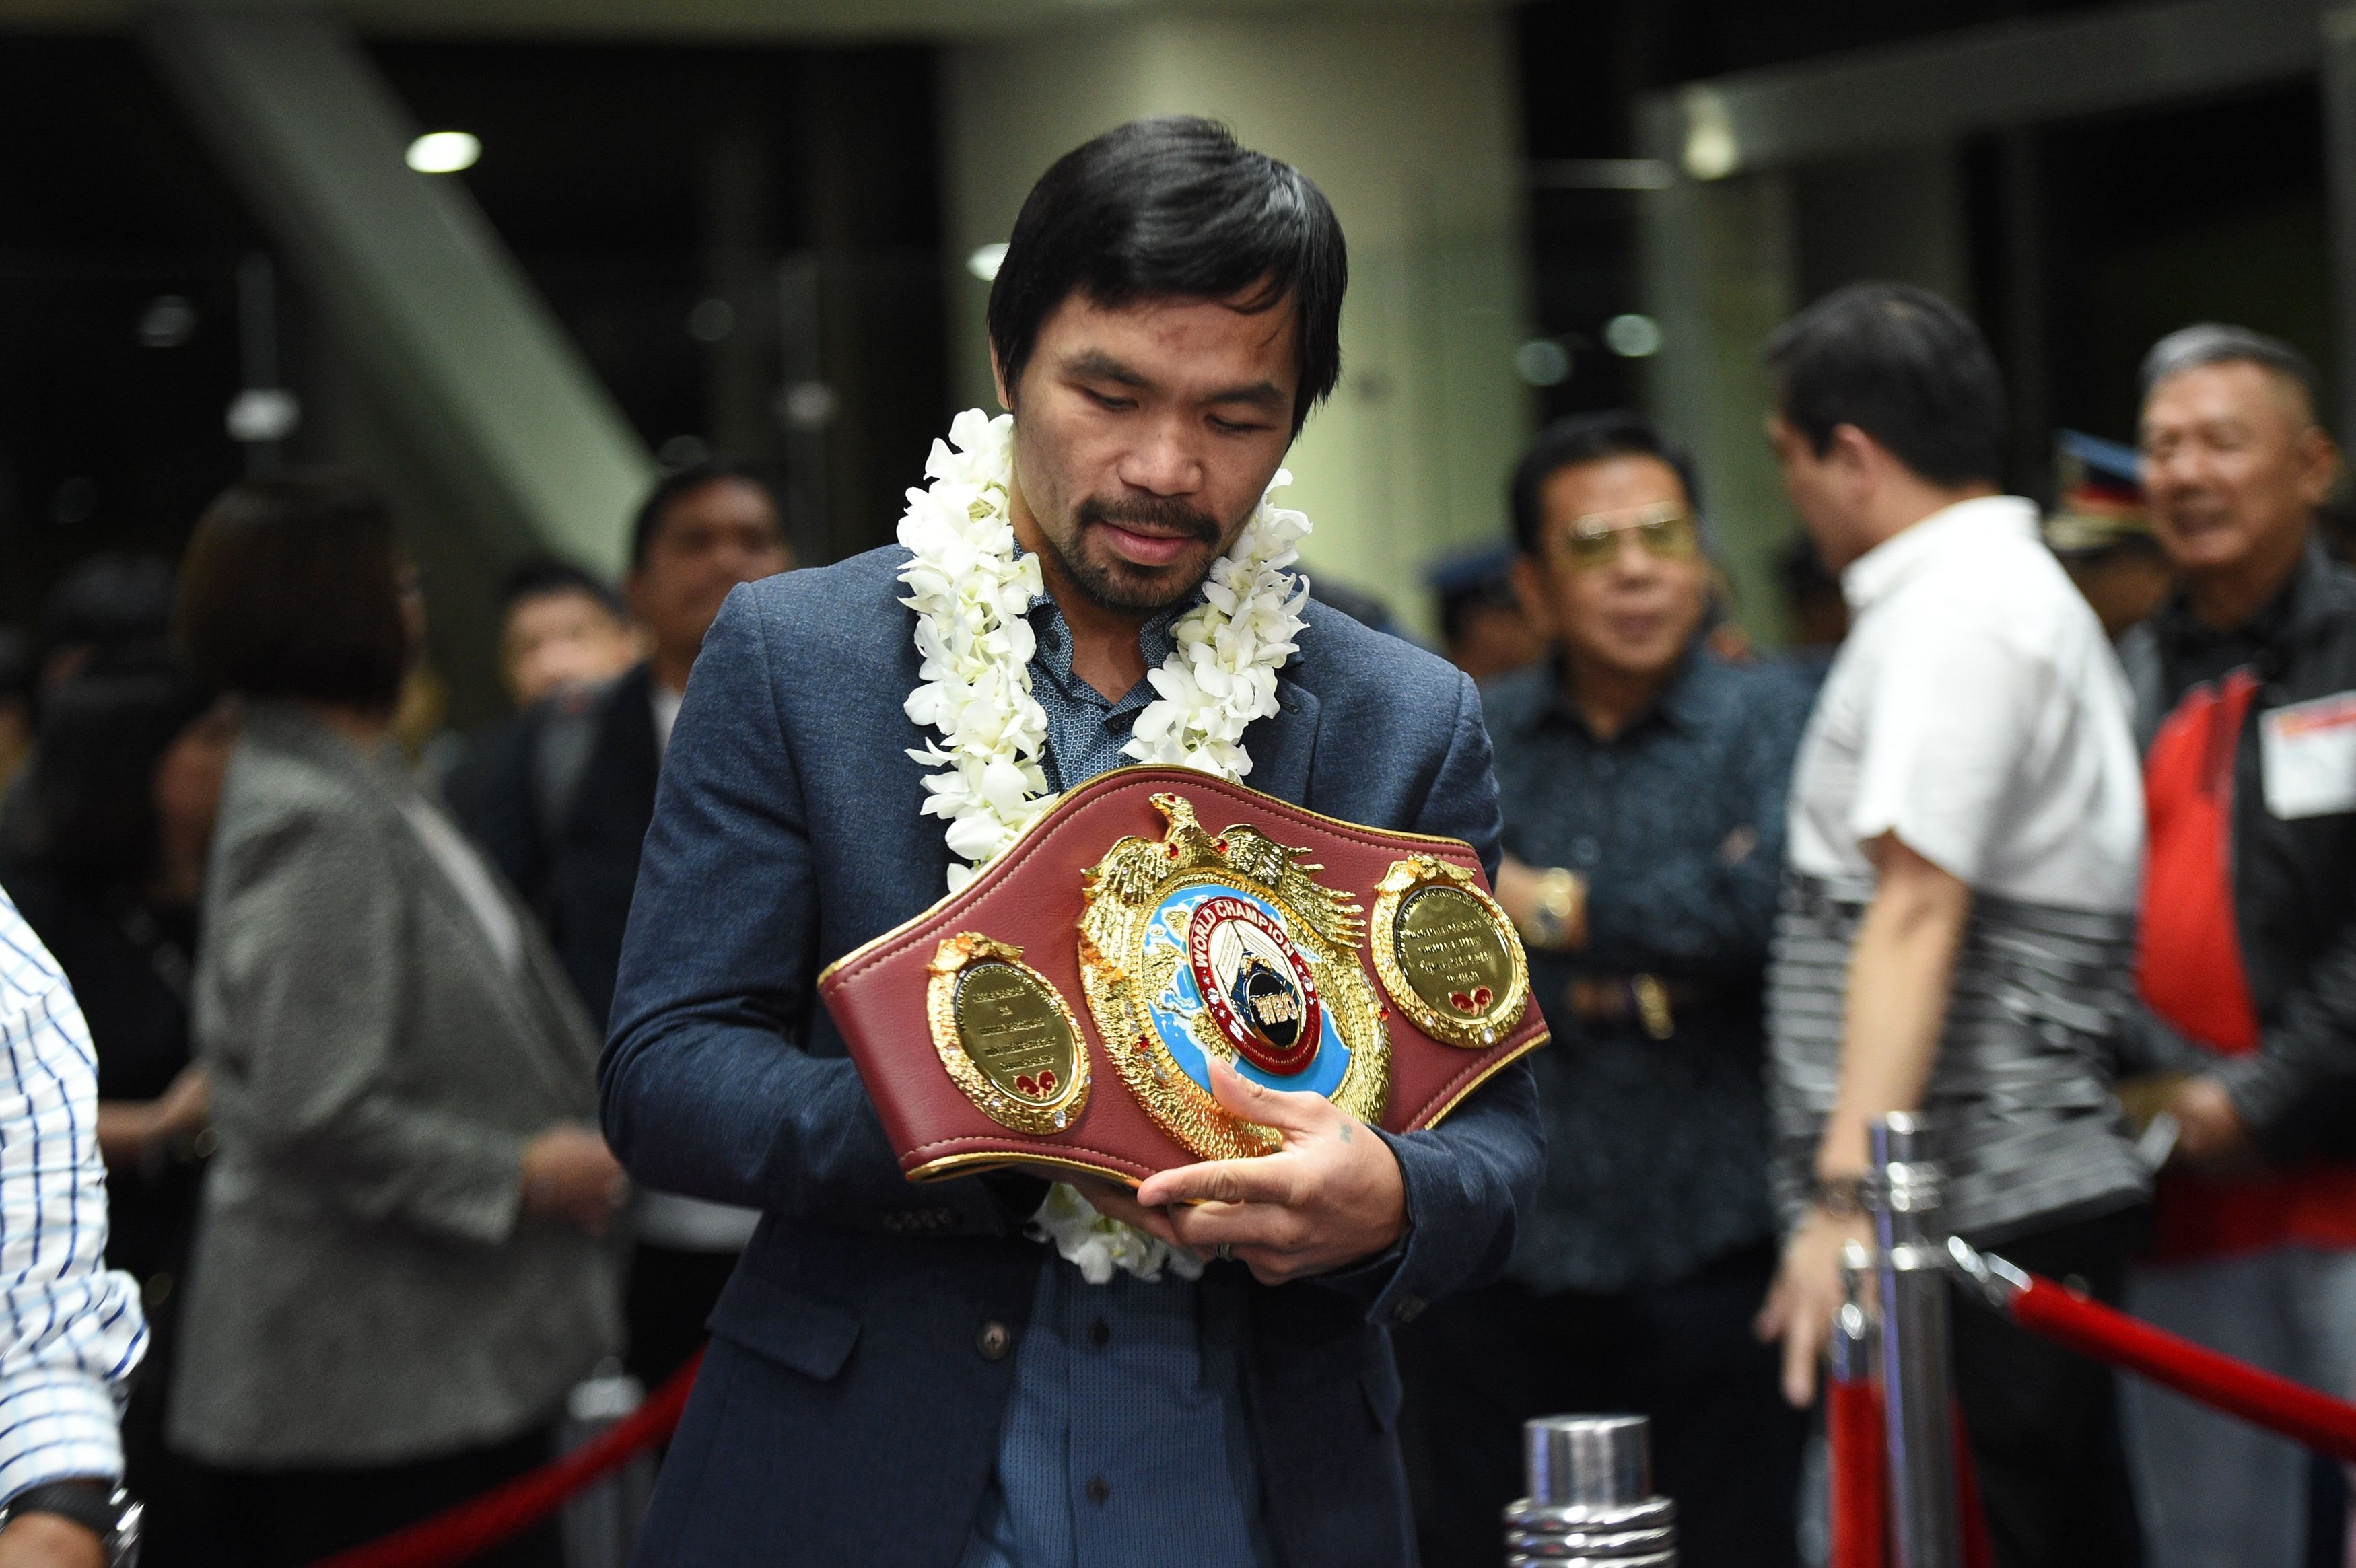 Horn's hopes rise after Pacquiao promoter says Khan fight is off